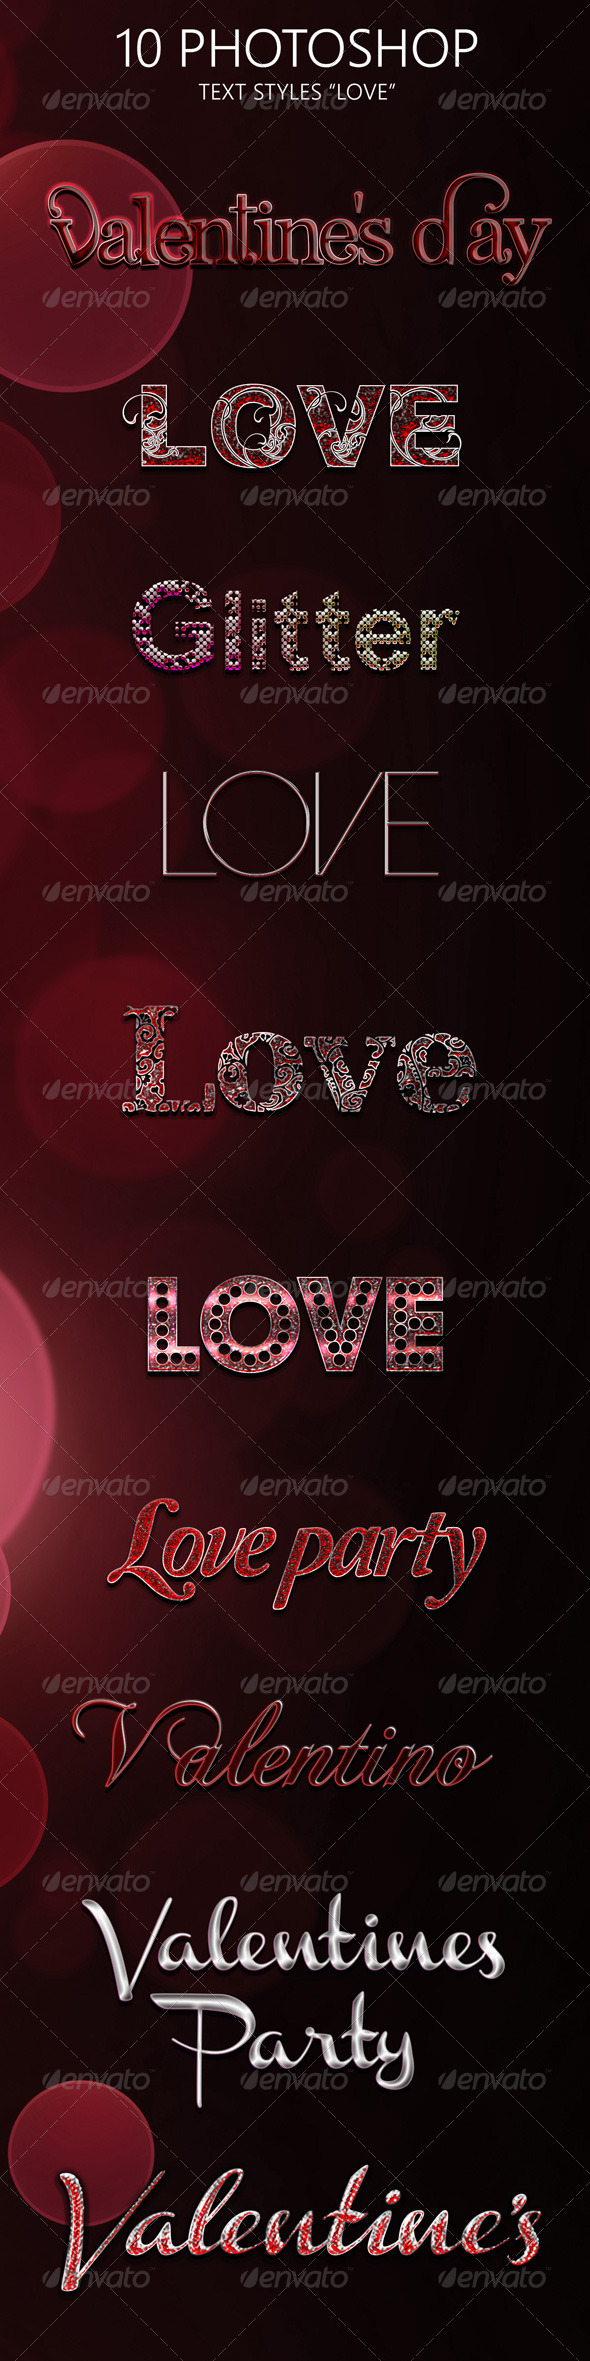 GraphicRiver 10 Love Photoshop Style 6560570